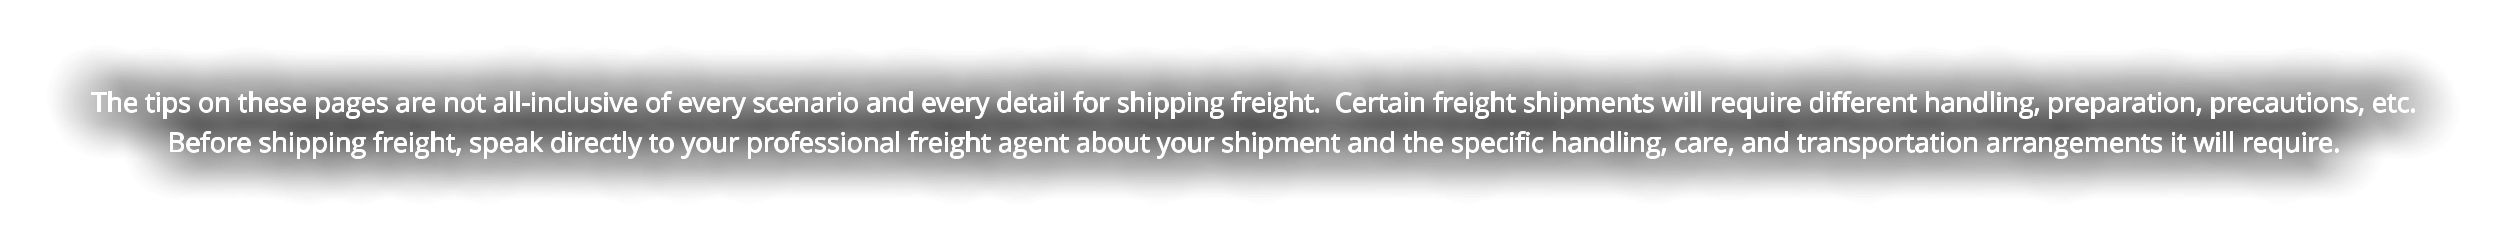 How To Ship Freight Truck Start to Finish Call 800-262-2746